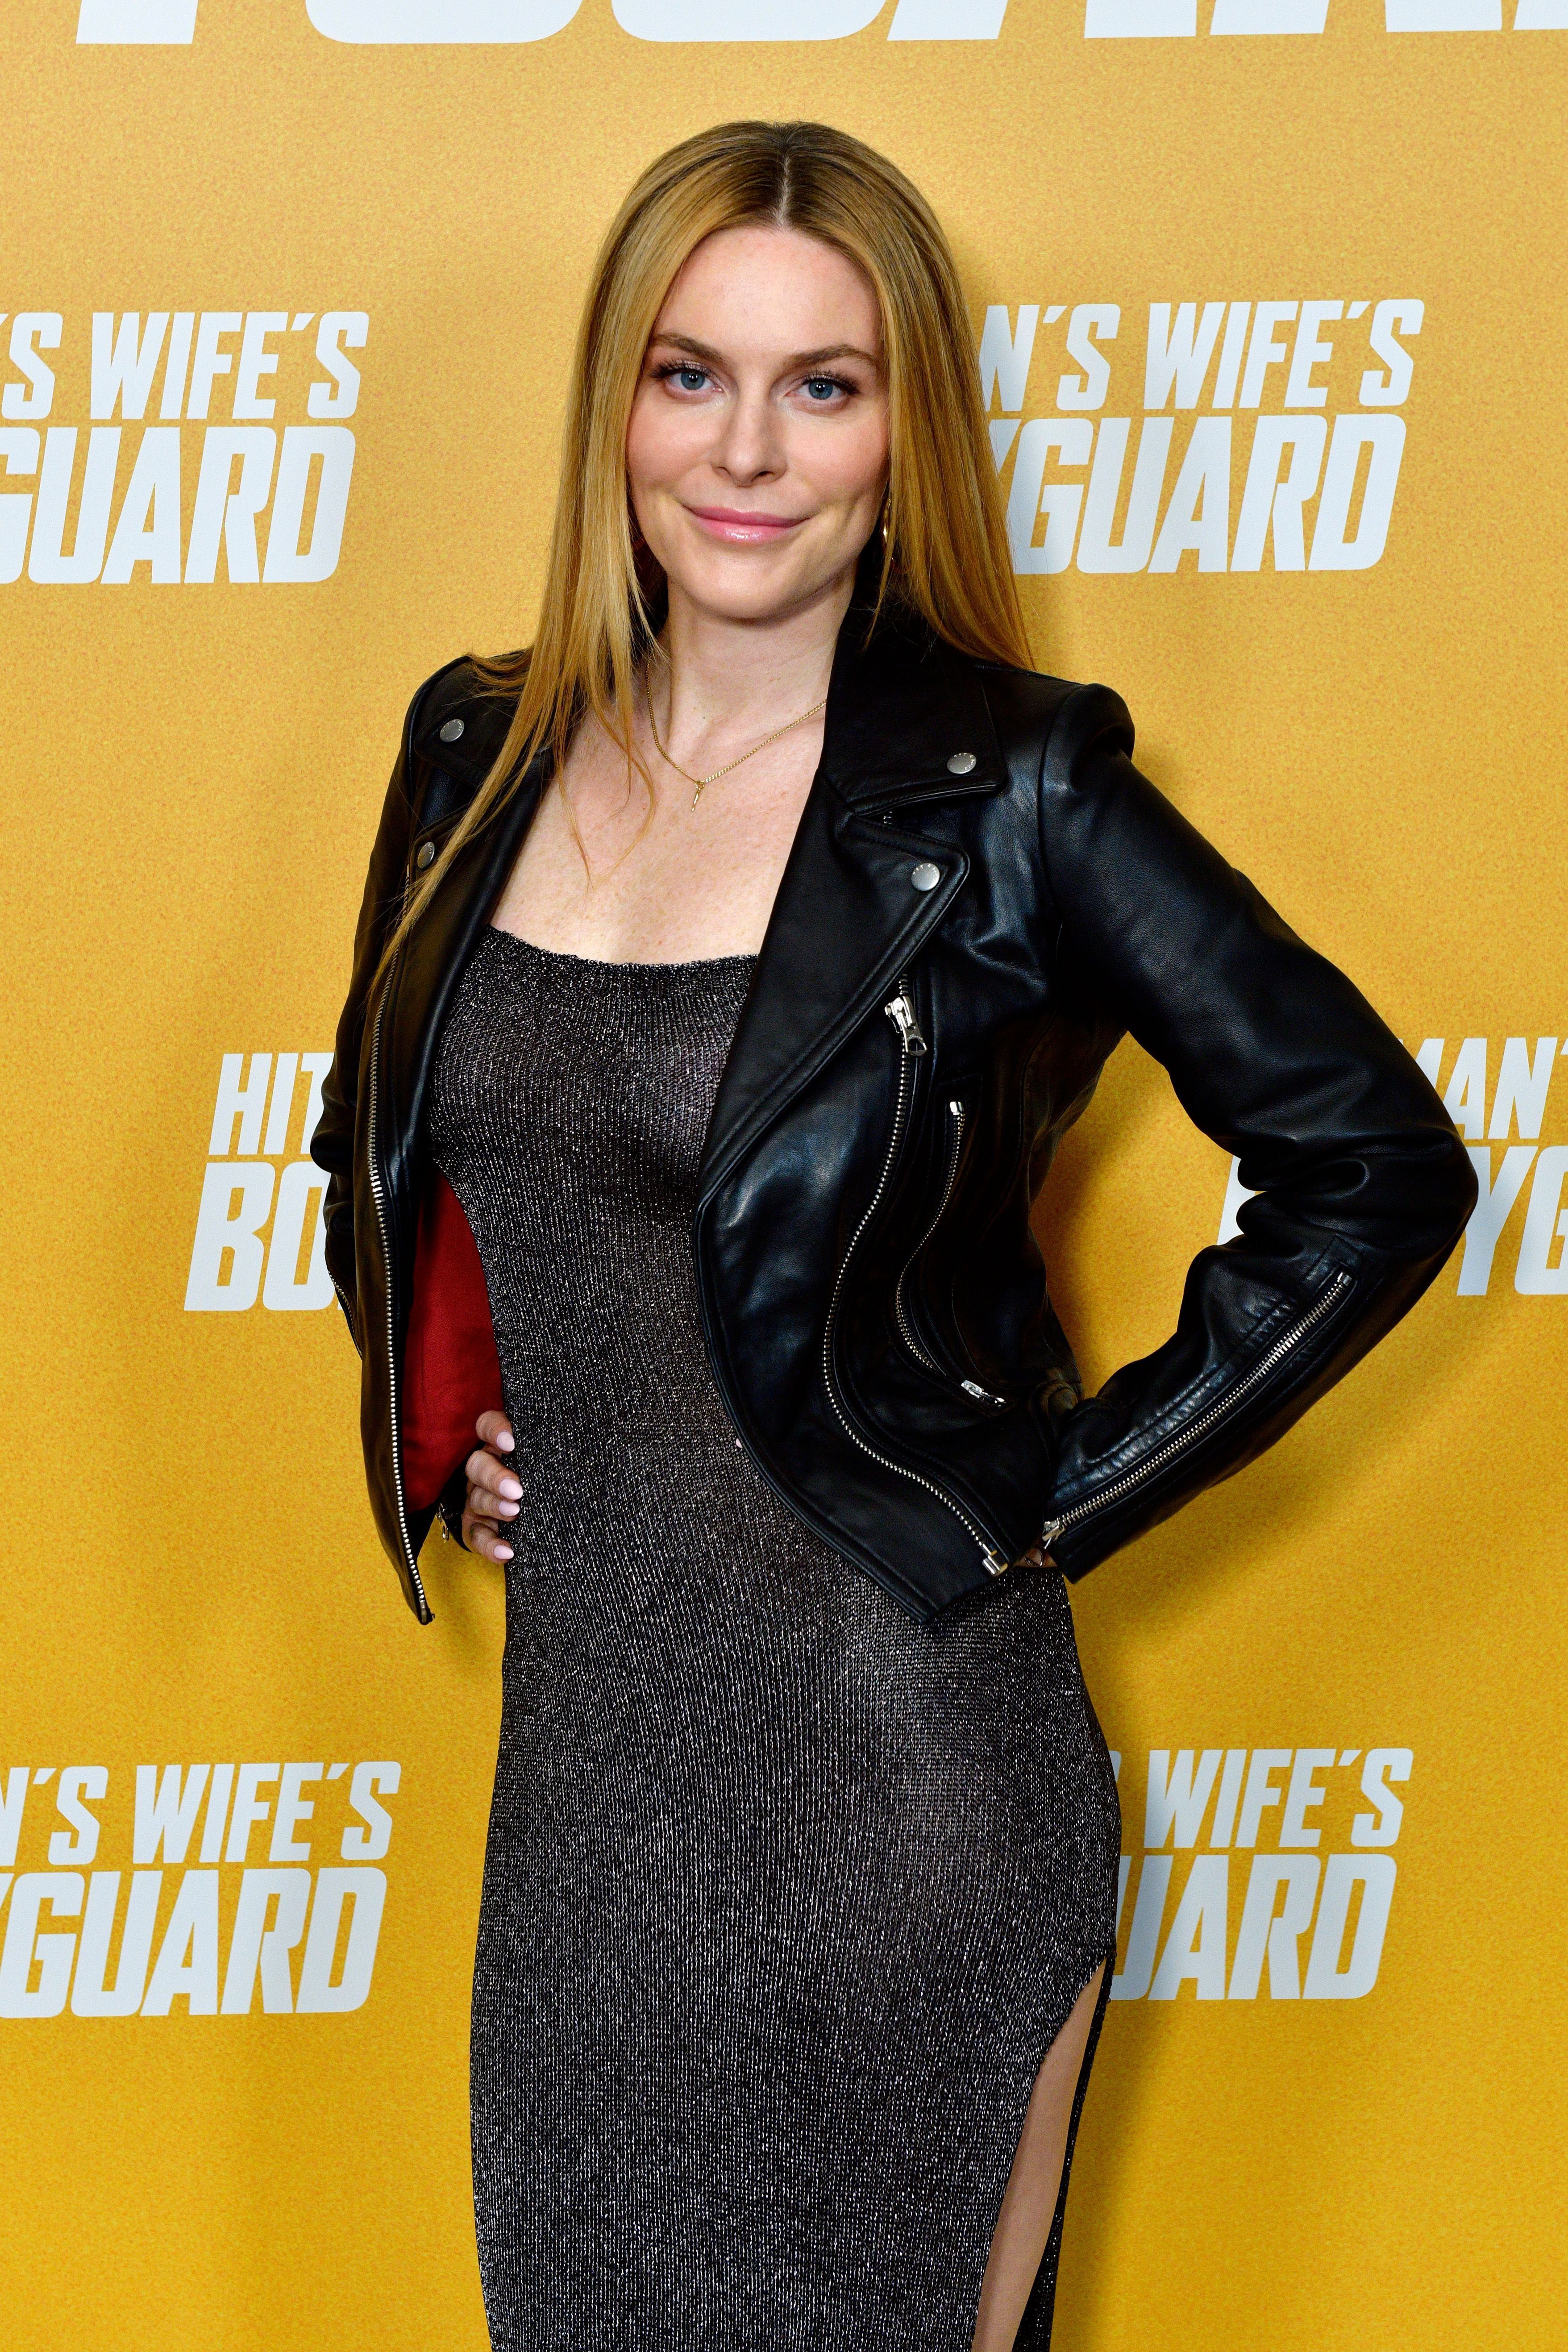 Leah McSweeney wears a black jacket over a black dress with her hair down.